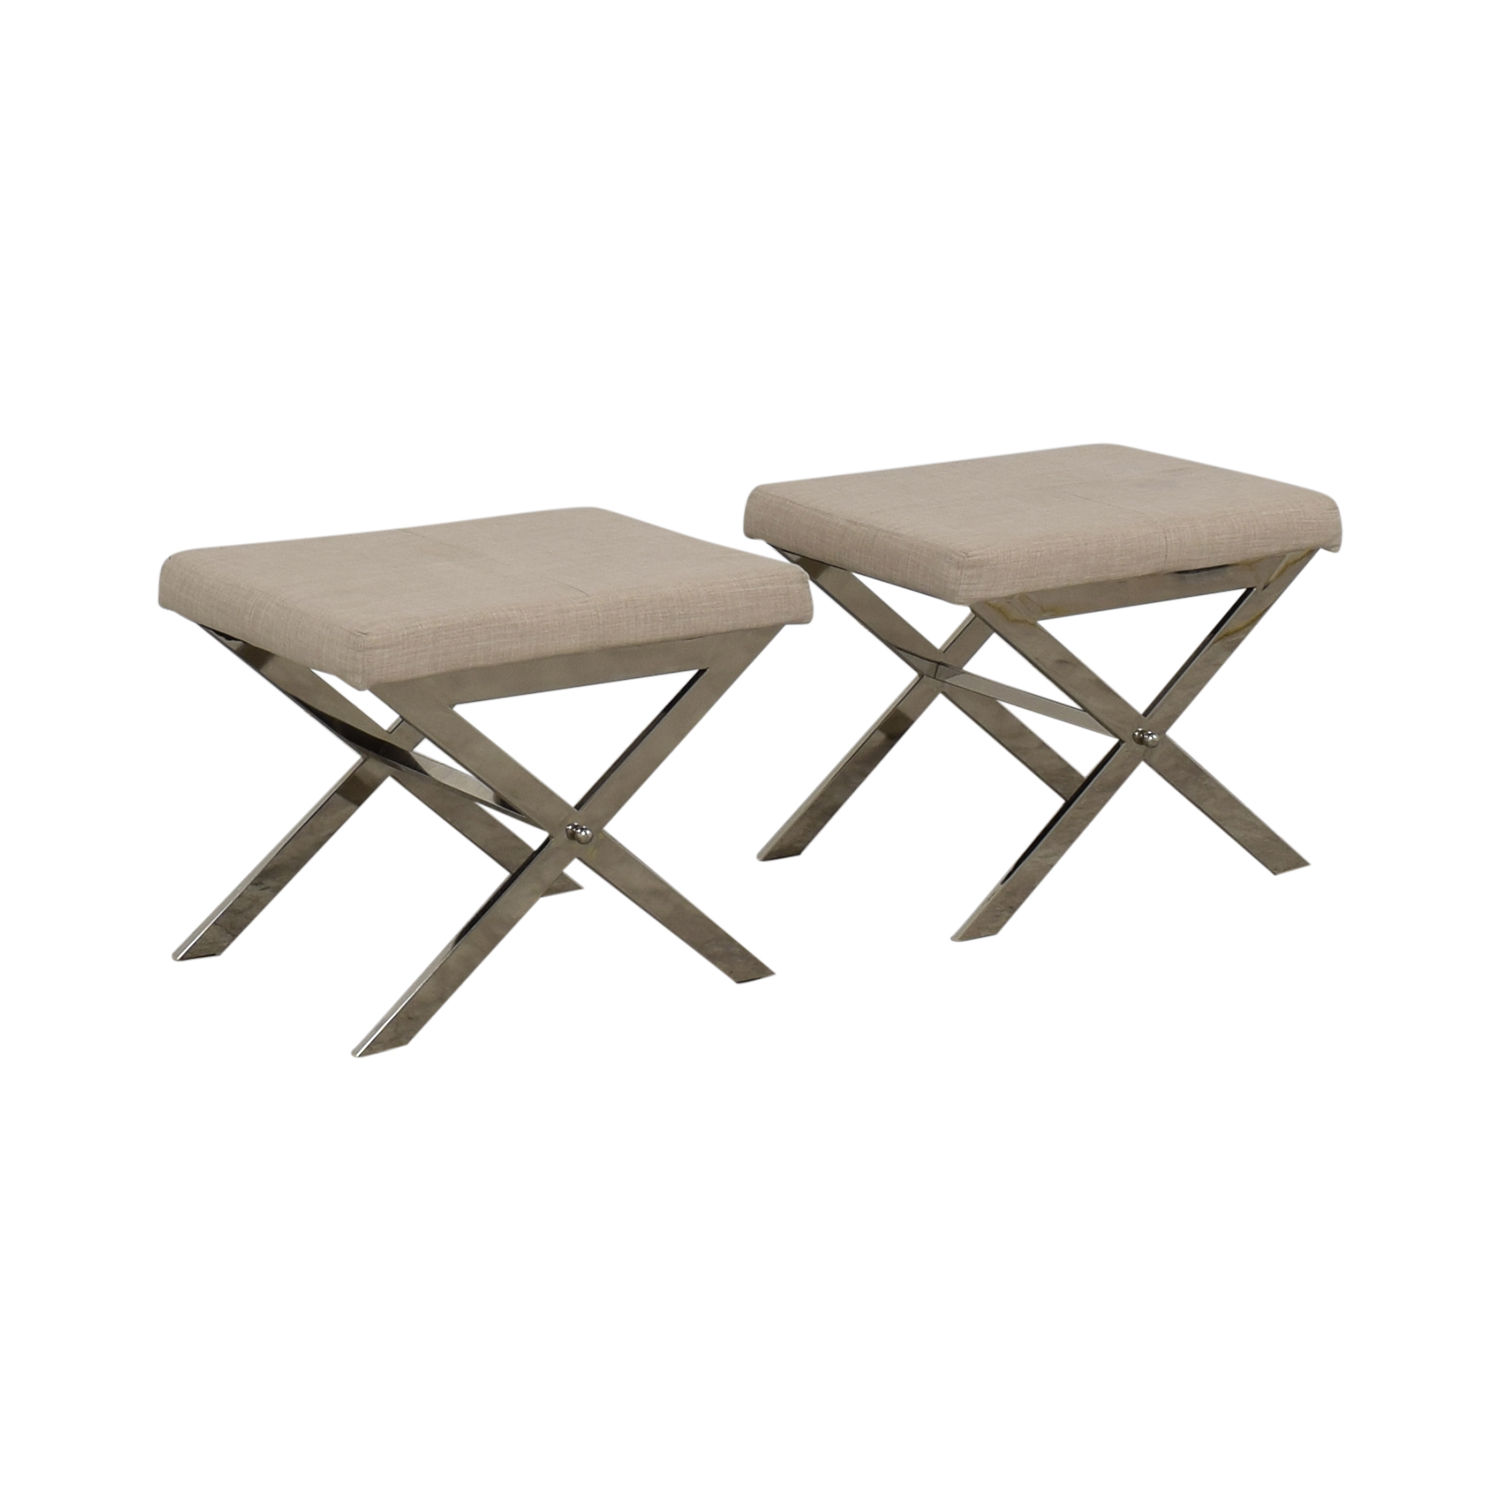 buy Wayfair Wayfair Harter Vanity Stools online